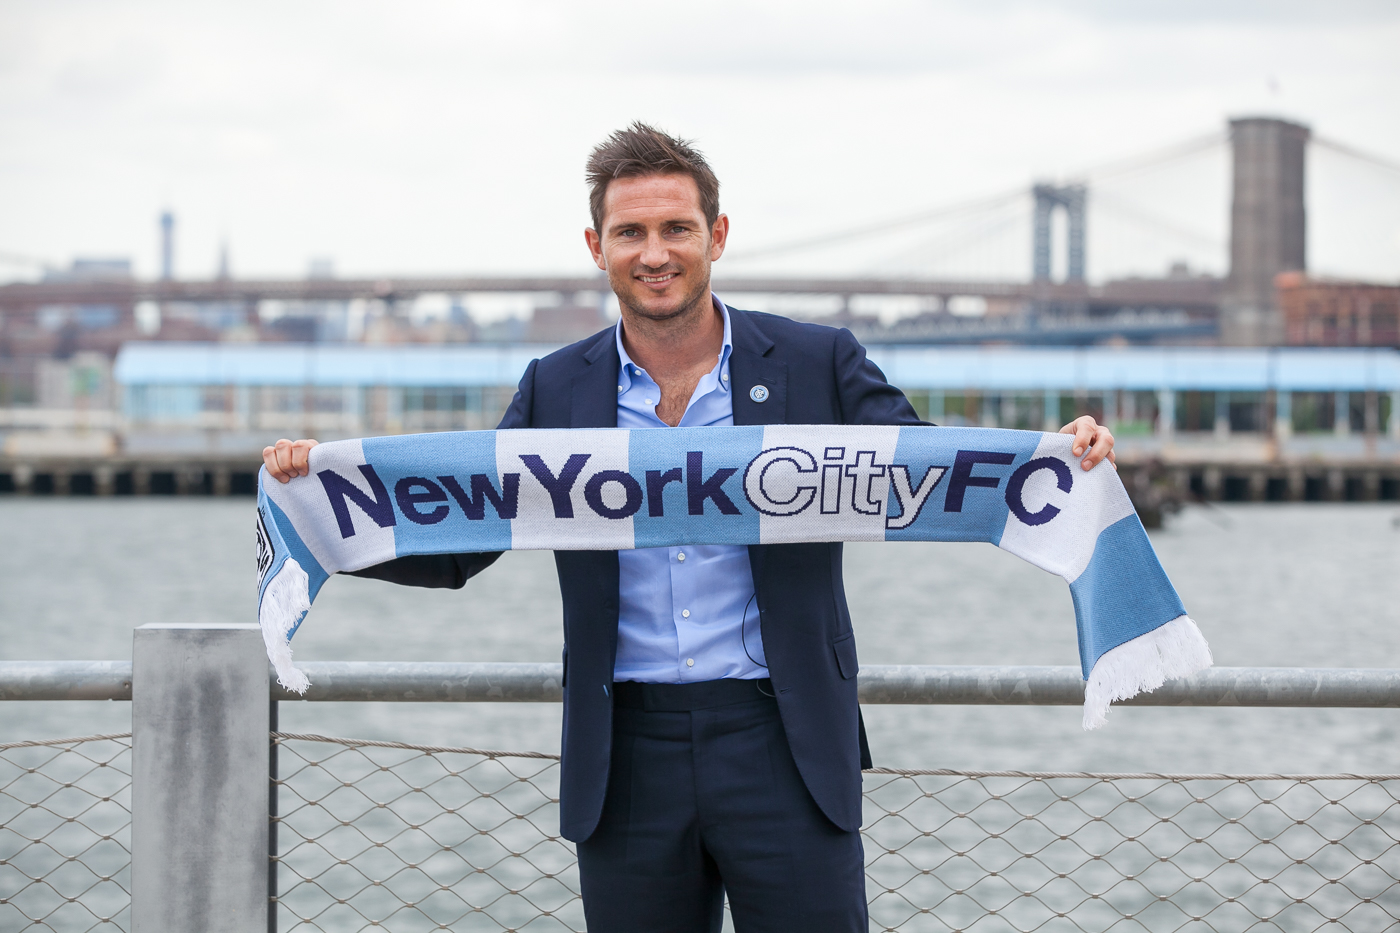 20140724-nycfc-signs-lampard-5d-079.jpg